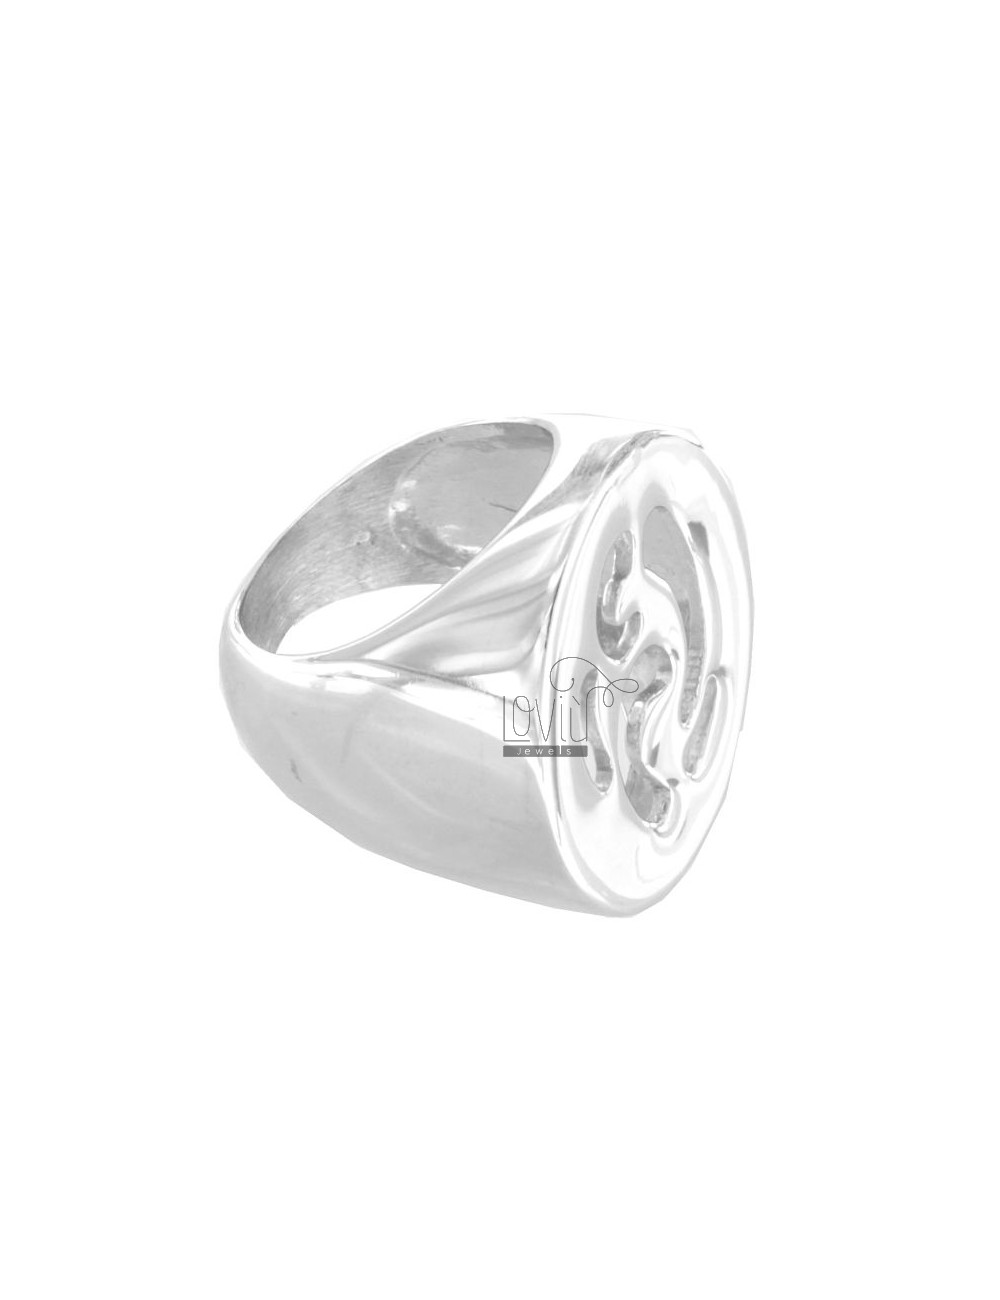 Casting RING OVAL PIERCED SILVER RHODIUM TIT 925 SIZE 16